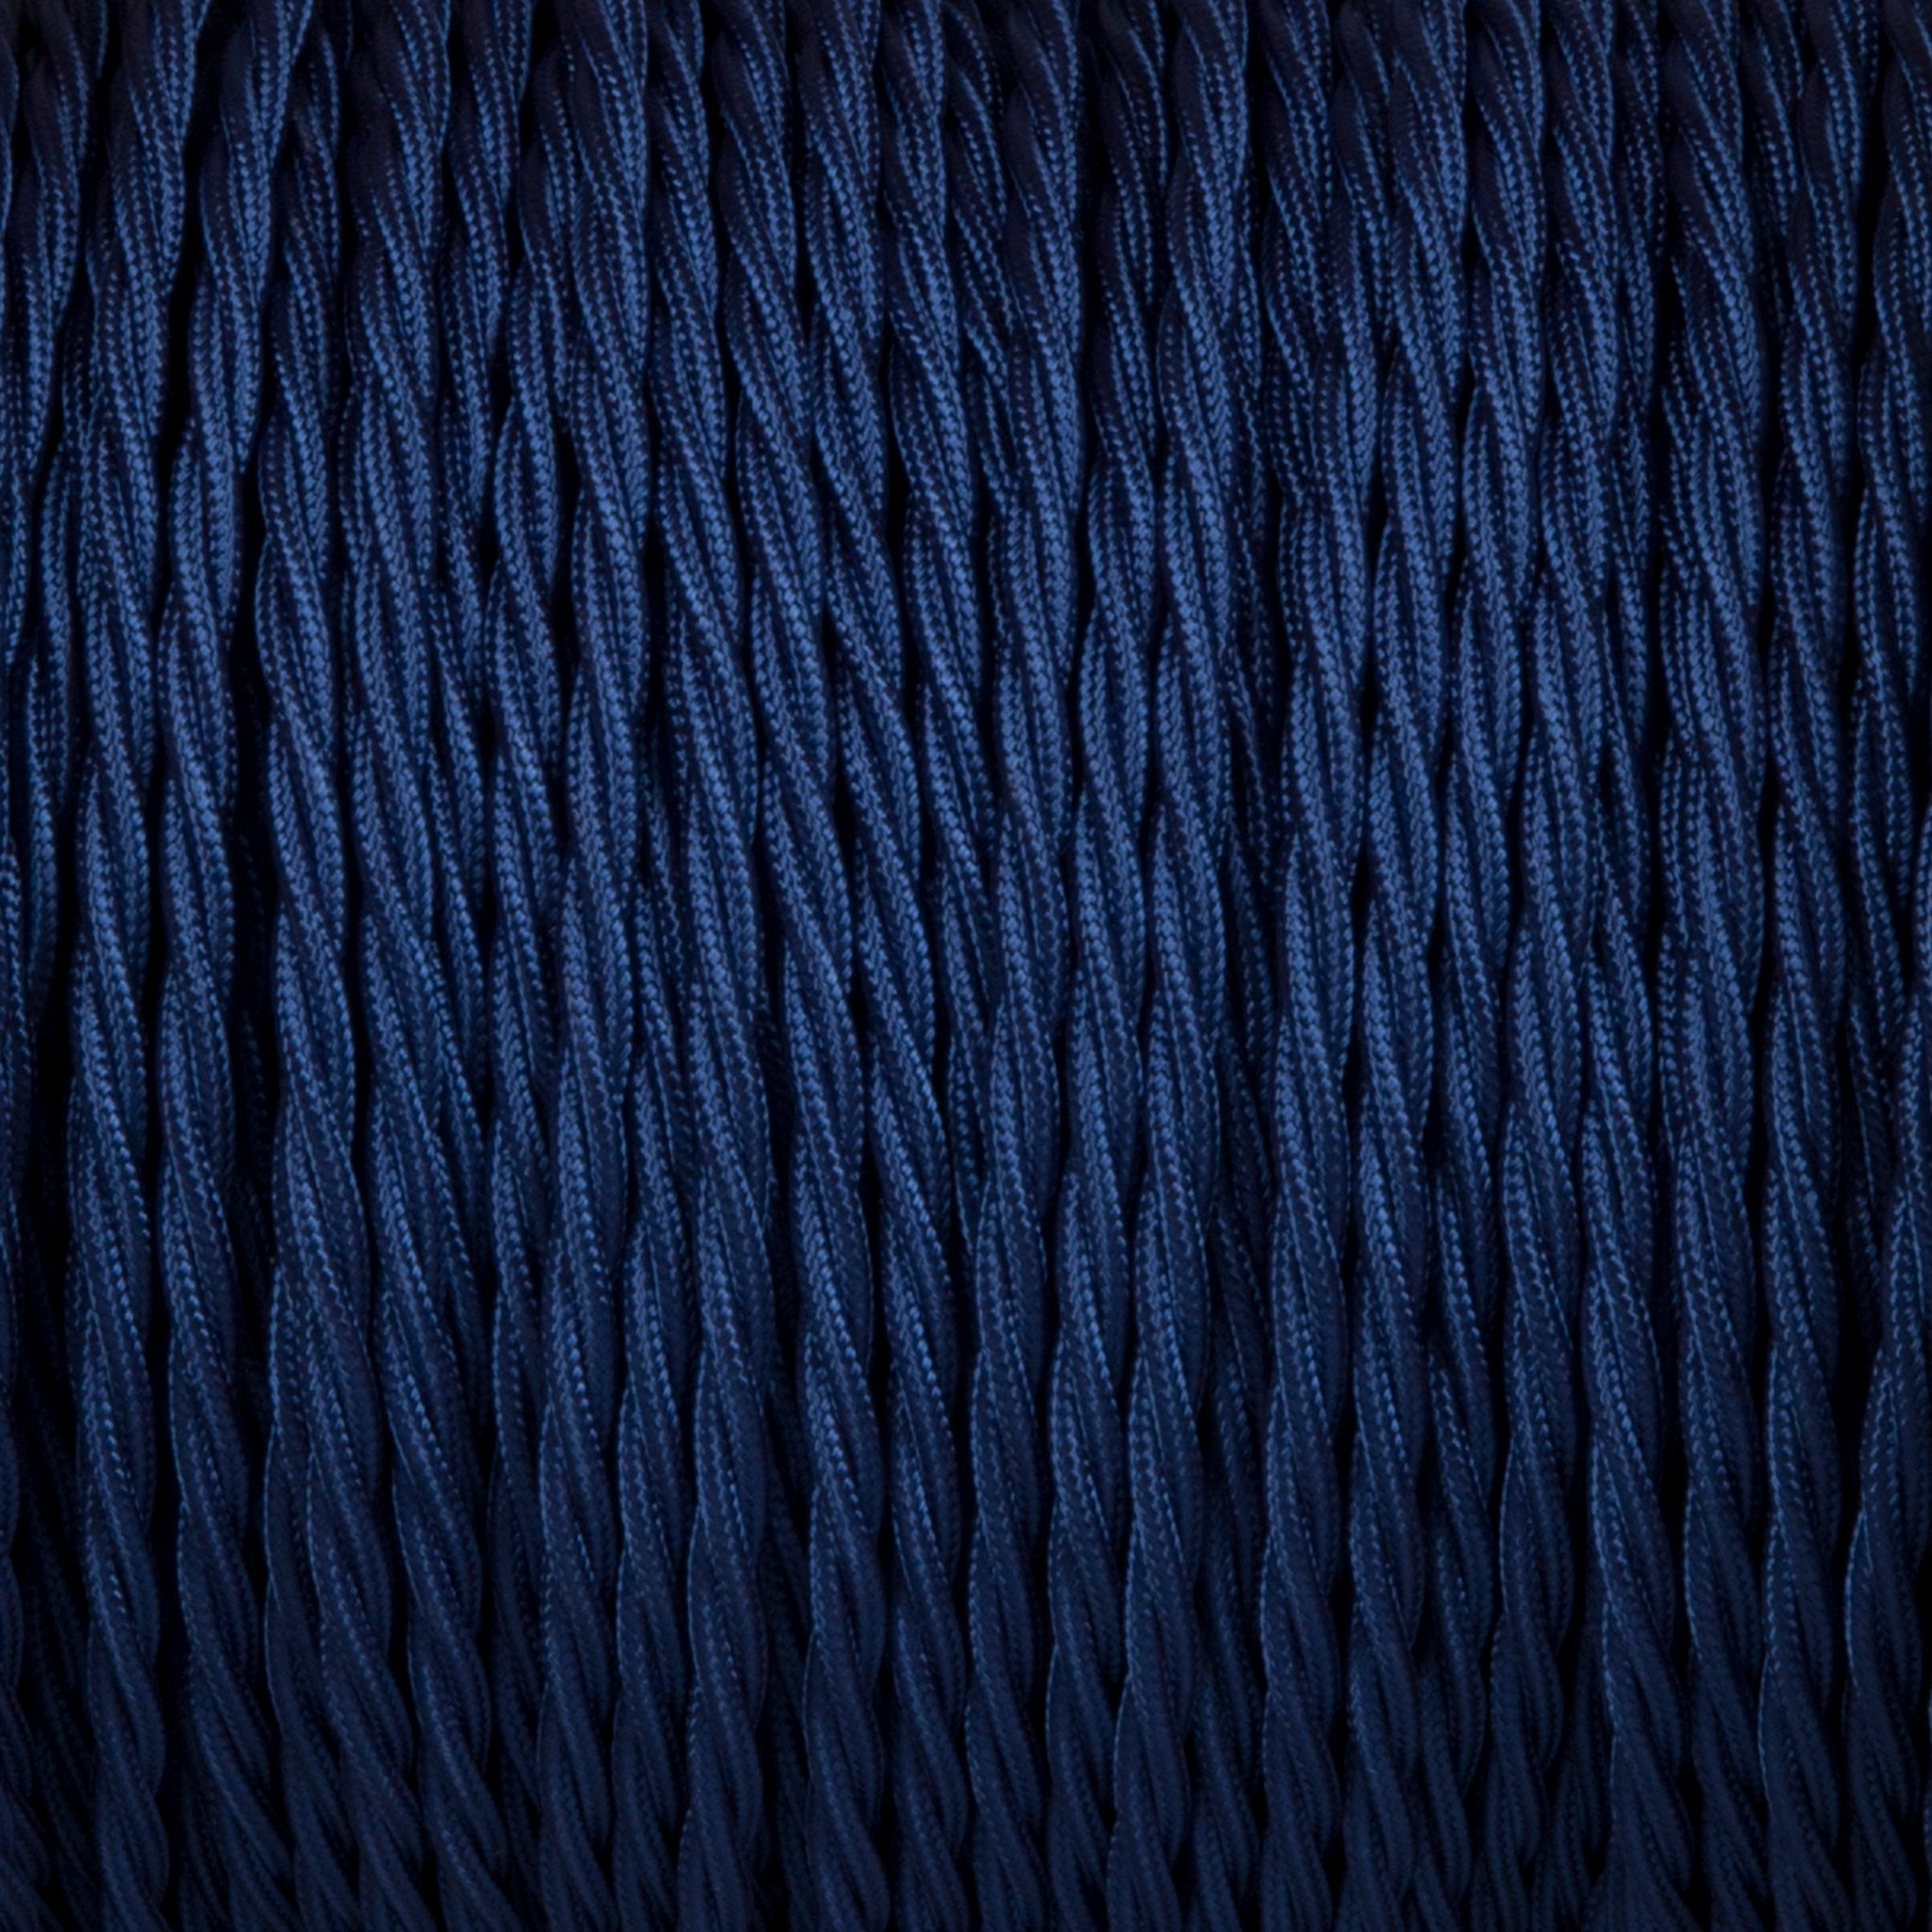 Twisted lighting cable - Royal blue braided fabric